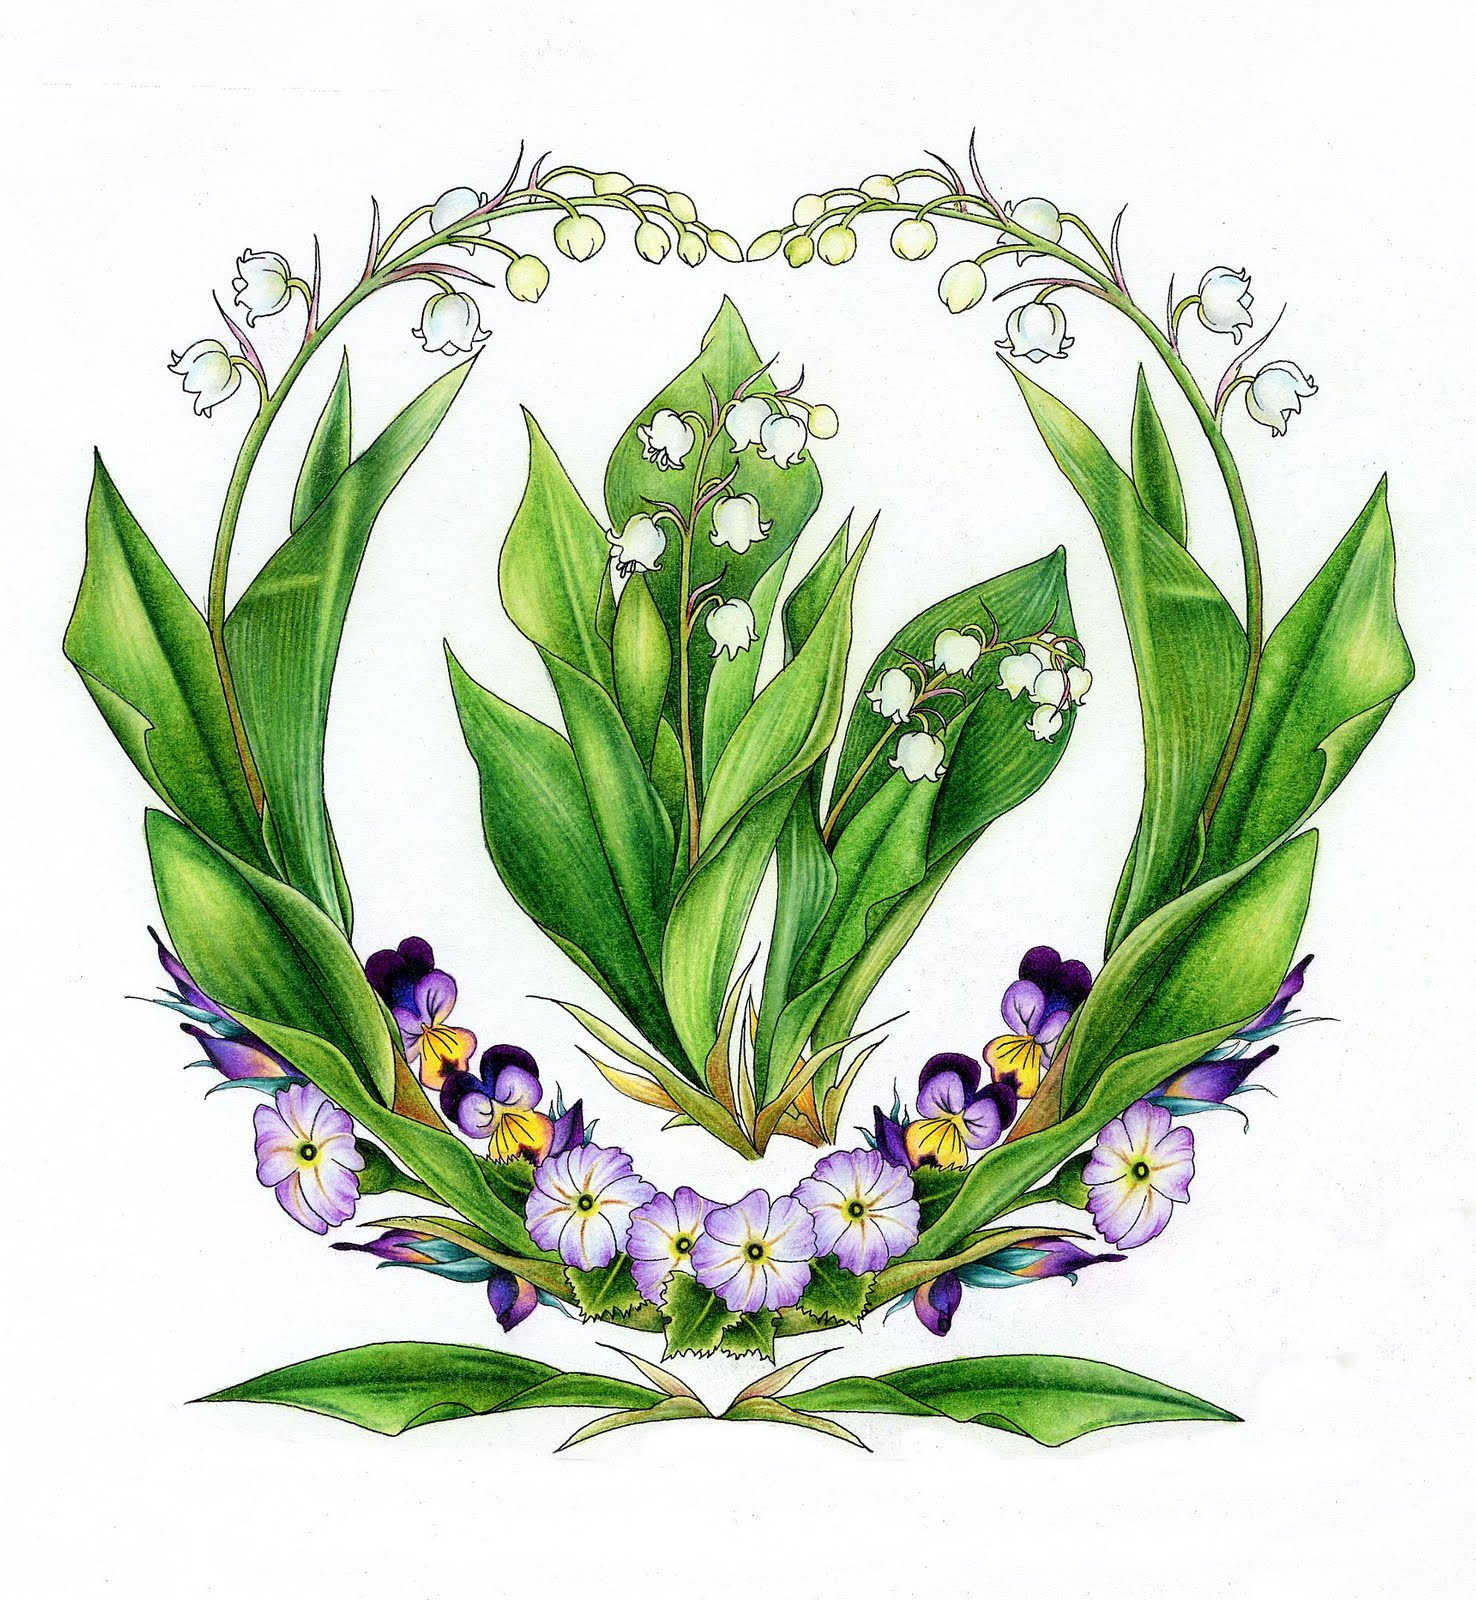 Tracey-anne's Blog: Beltane, May day lore